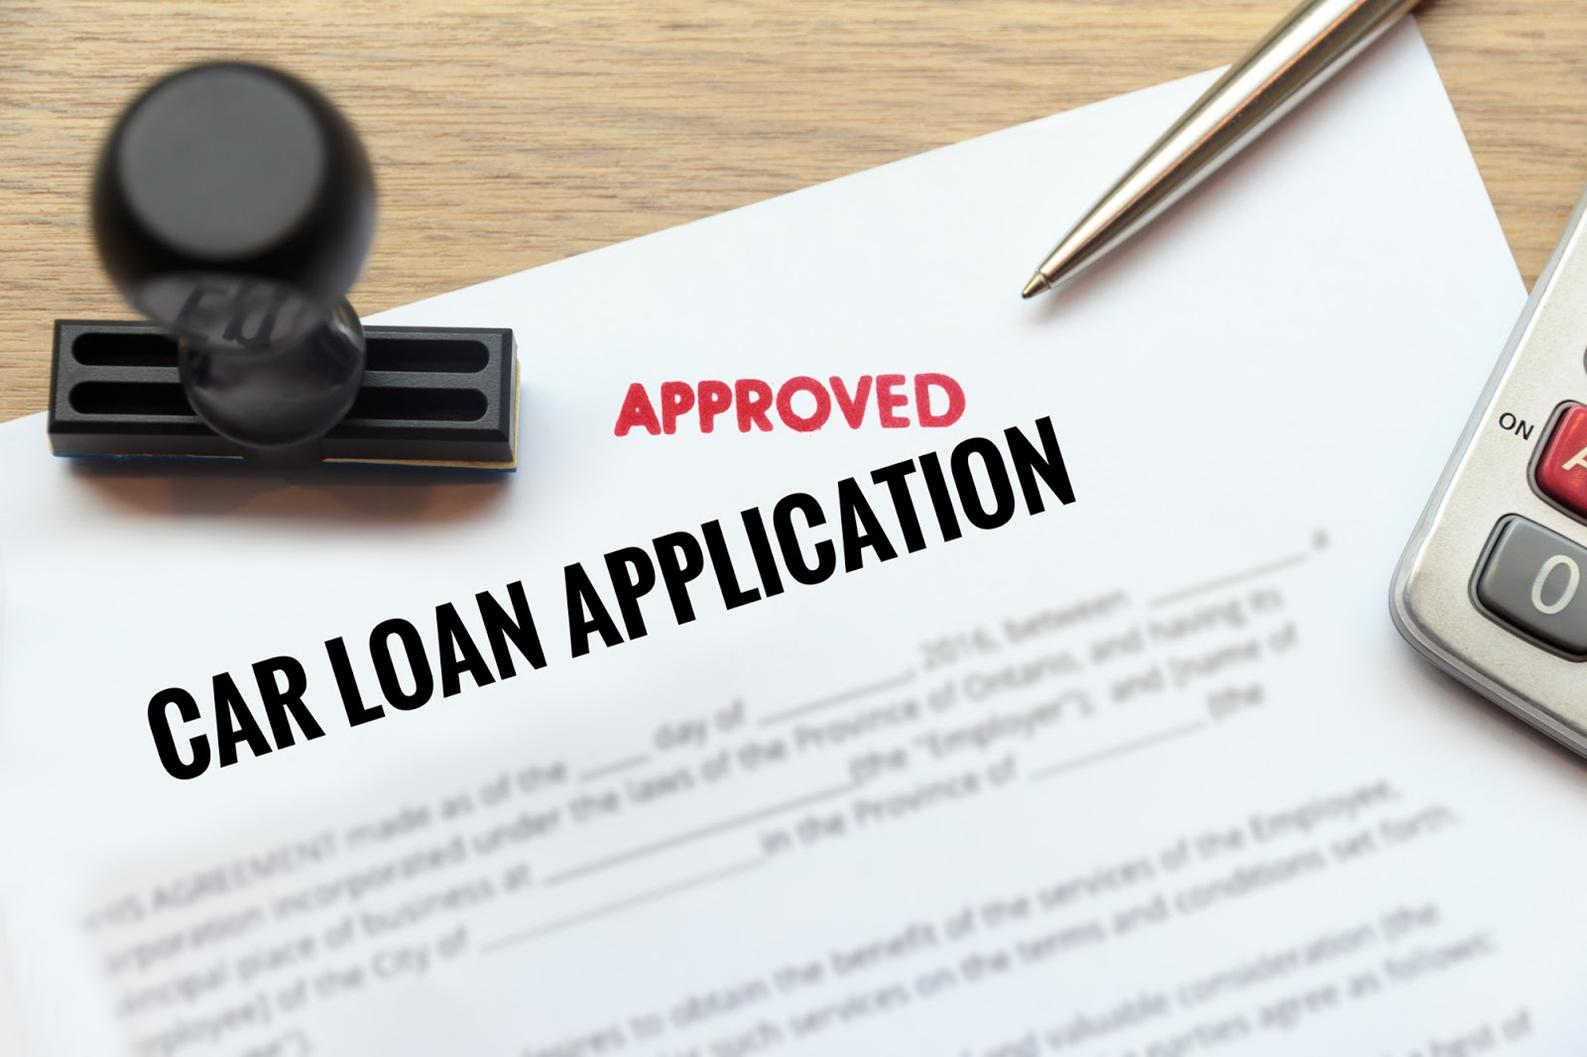 approved car loan application form